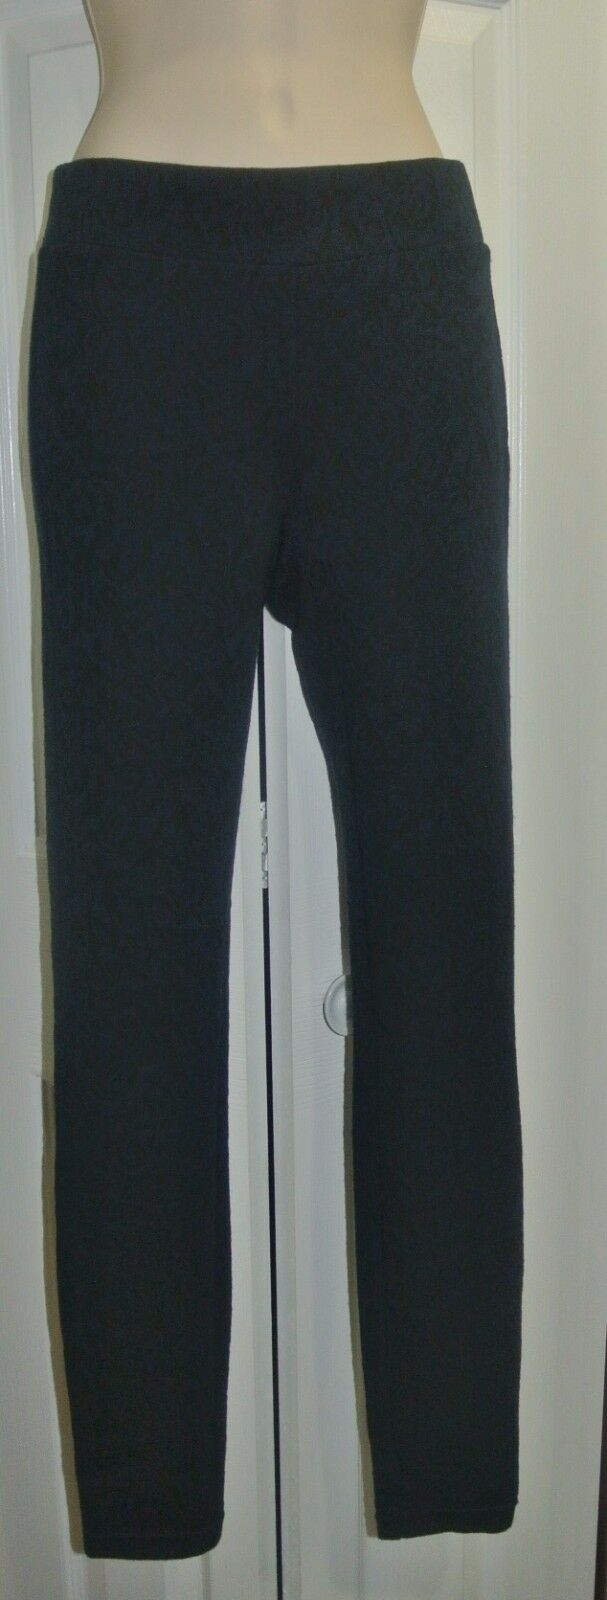 ANN TAYLOR PONTE STRETCH LEGGINGS SZ. XS ORIG.  79.99 - NEW